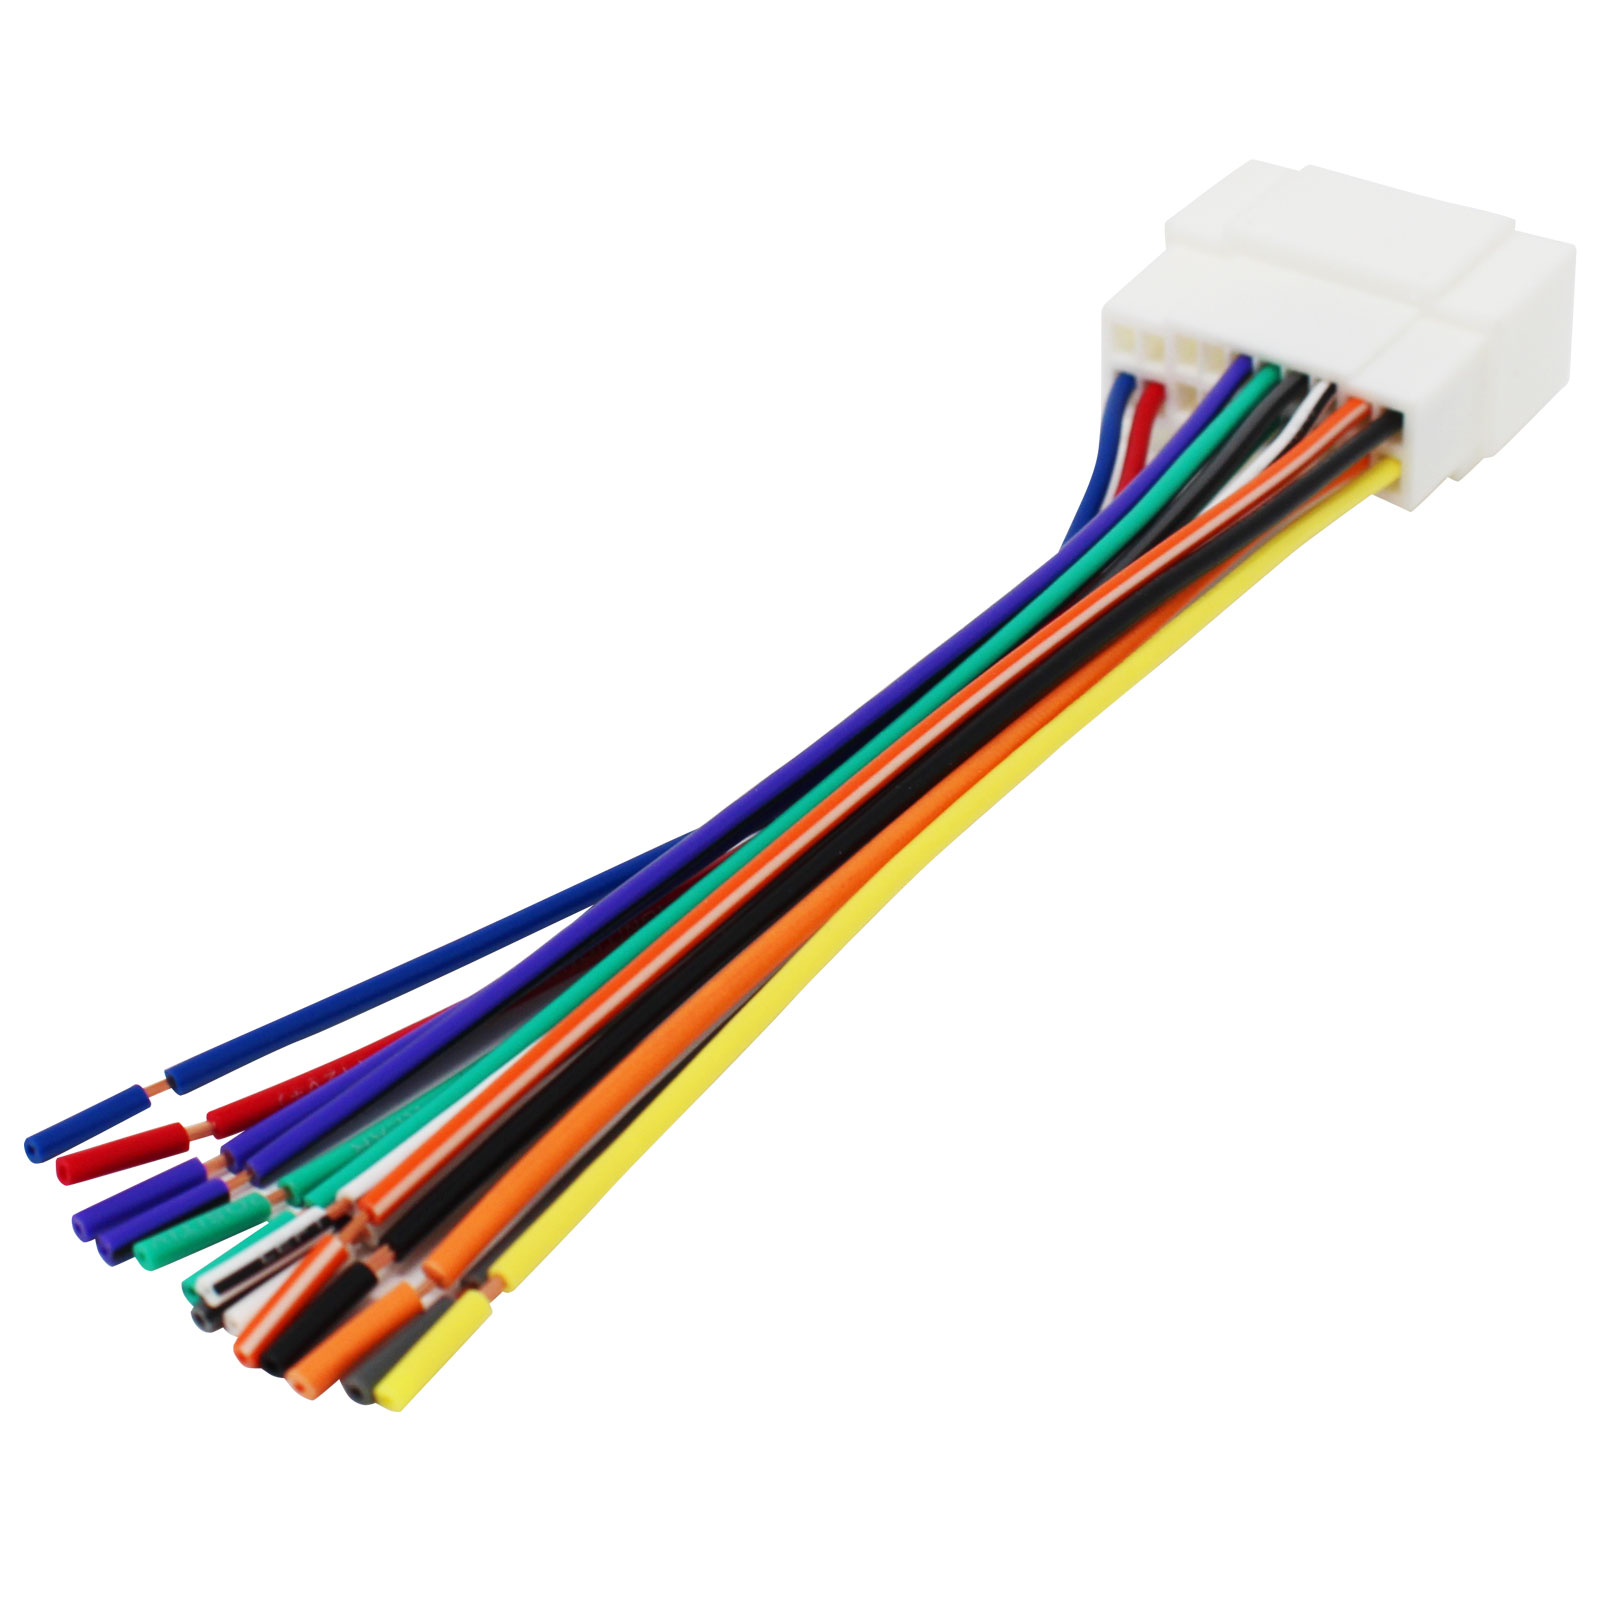 Replacement Radio Wiring Harness for 2005 Honda Civic LX Sedan 4-Door 1.7L - Car Stereo Connector - image 1 of 4